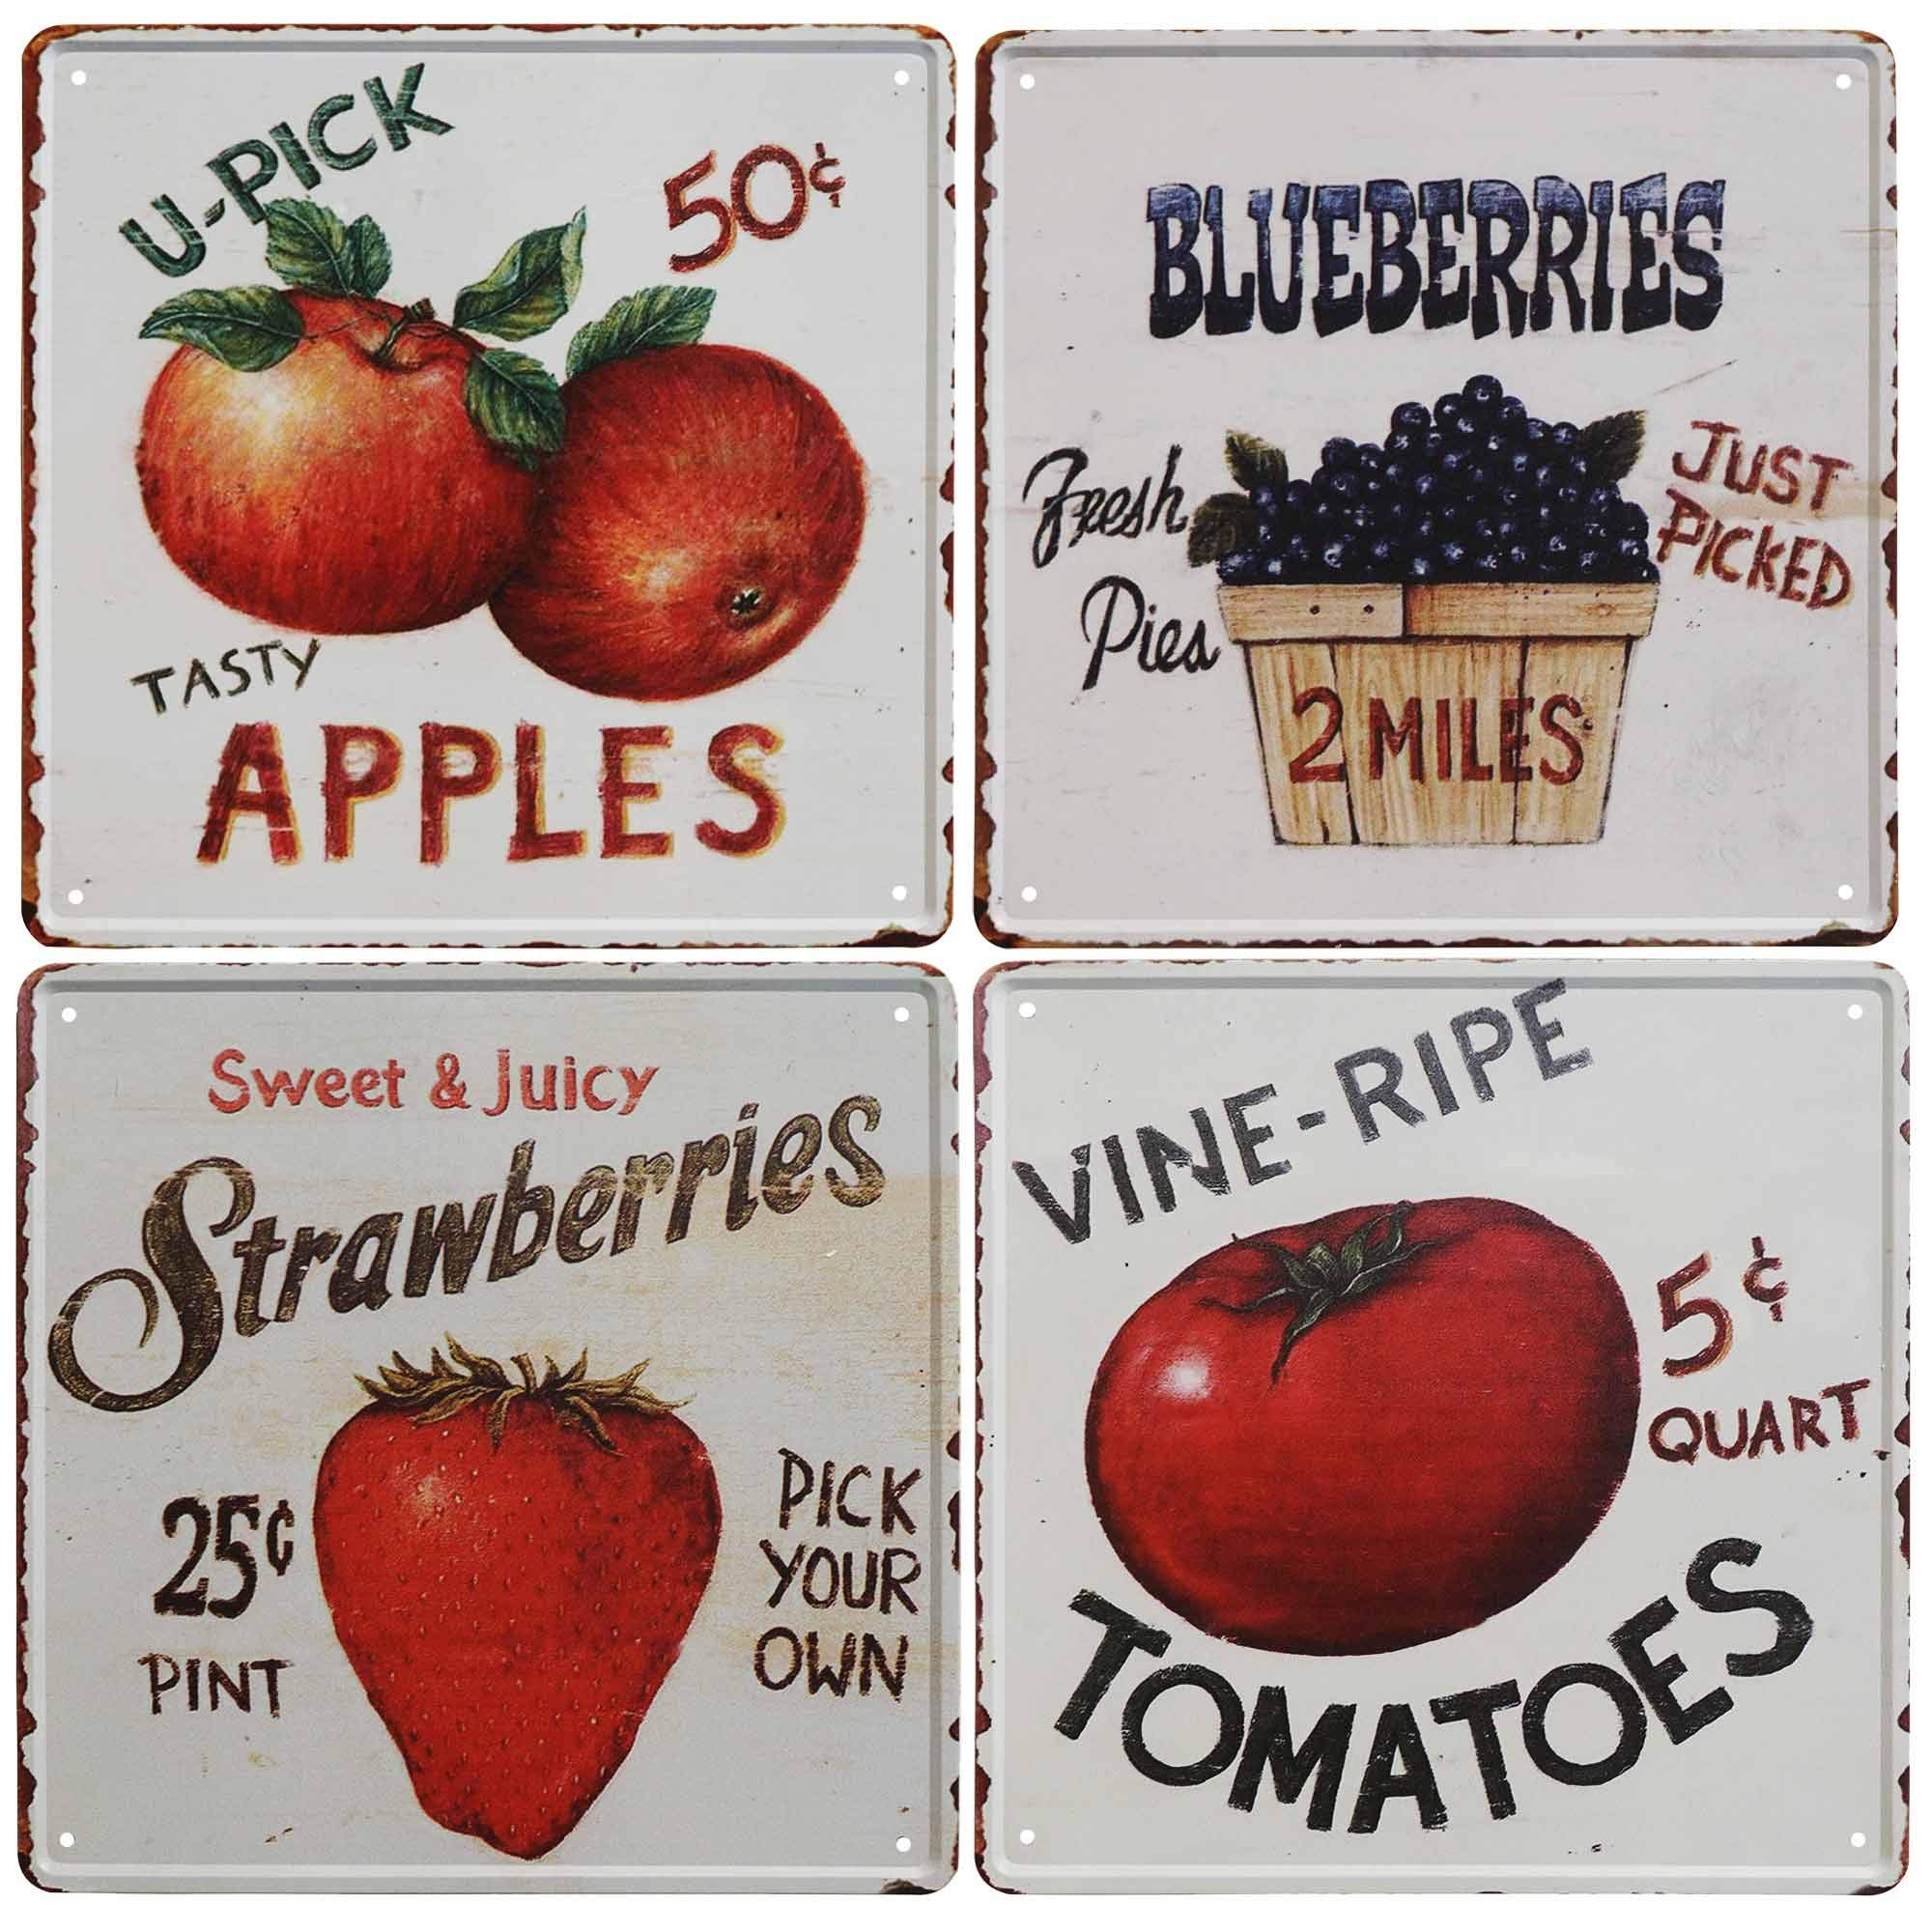 TISOSOVintage Fruit Signs Vine Ripe Tomatoes,Sweet Juicy Strawberries,Tasty Apples,Fresh Picked Blueberries Reto Vintage Tin Bar Sign Country Home Decor Wall Decoration Signs Gifts 4pcs-12X12inch